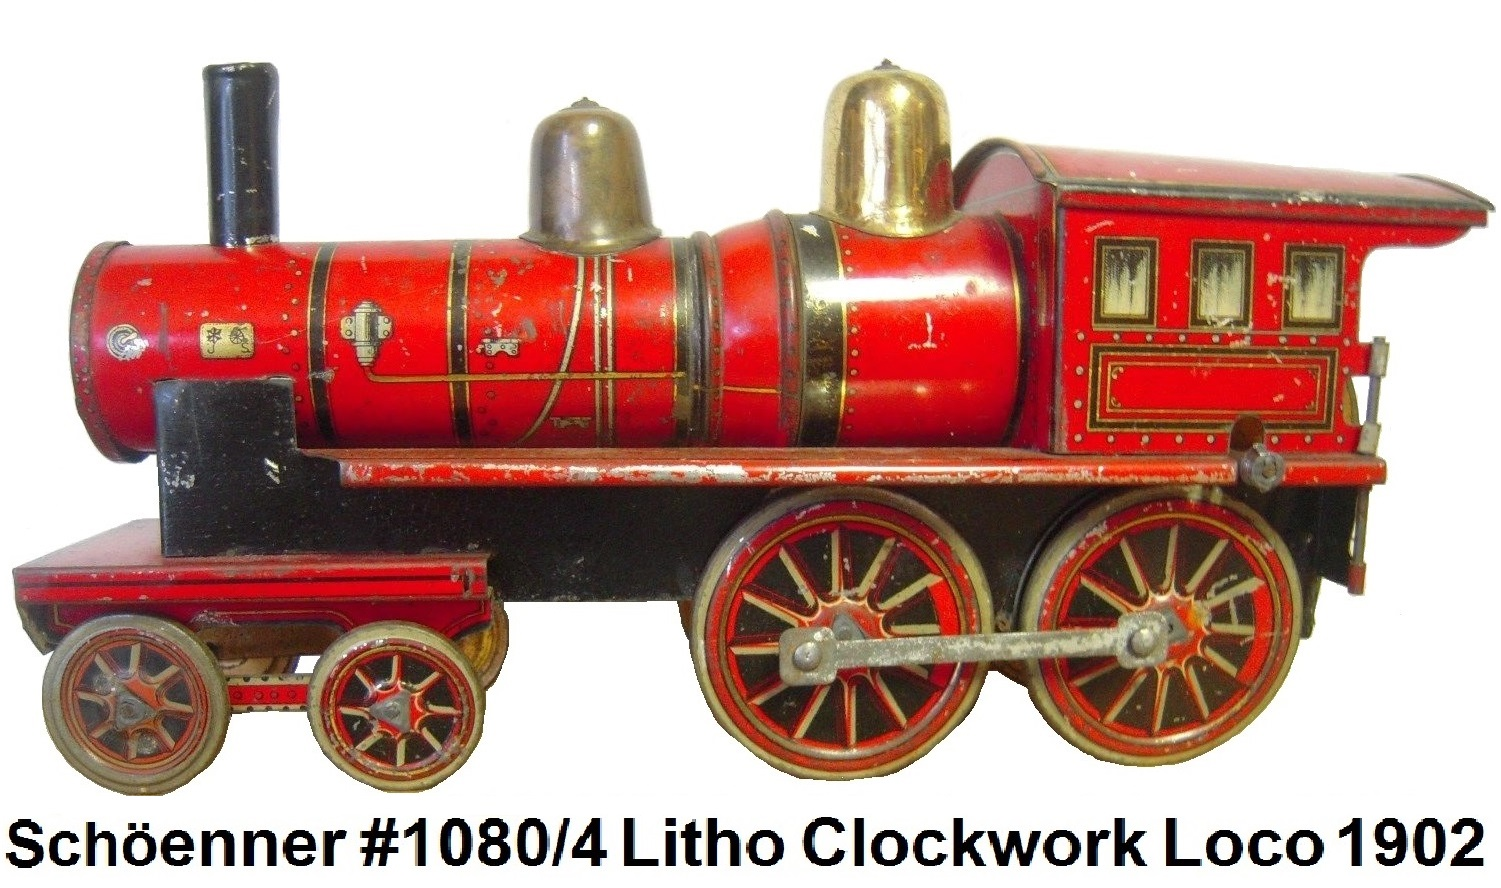 Schöenner #1080/4 lithographed clockwork locomotive 1902 era